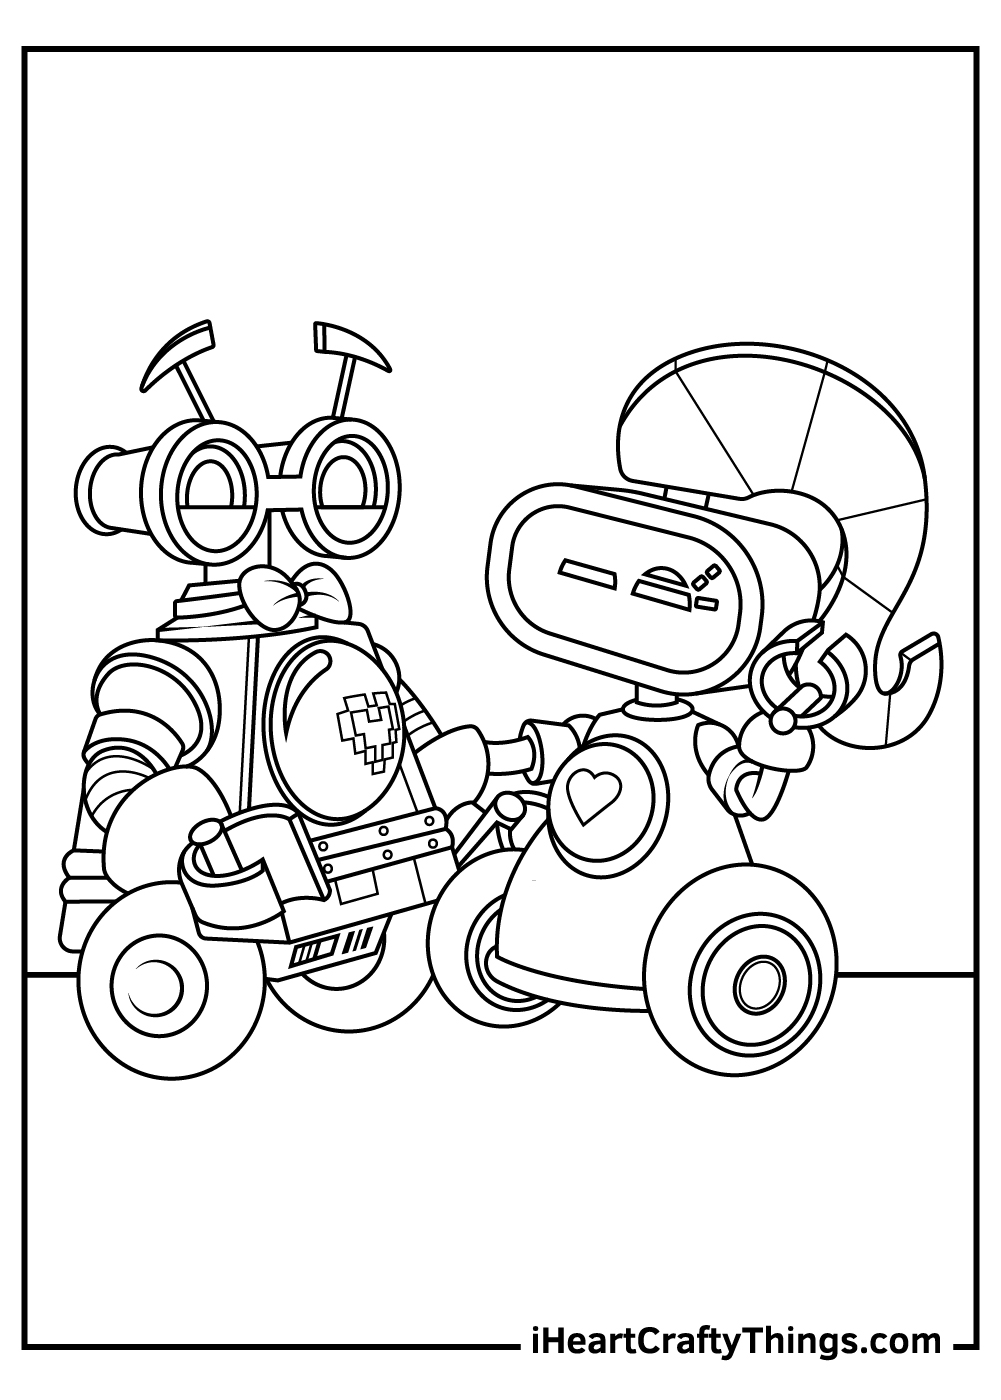 zobo zoe lego friends coloring pages free printables